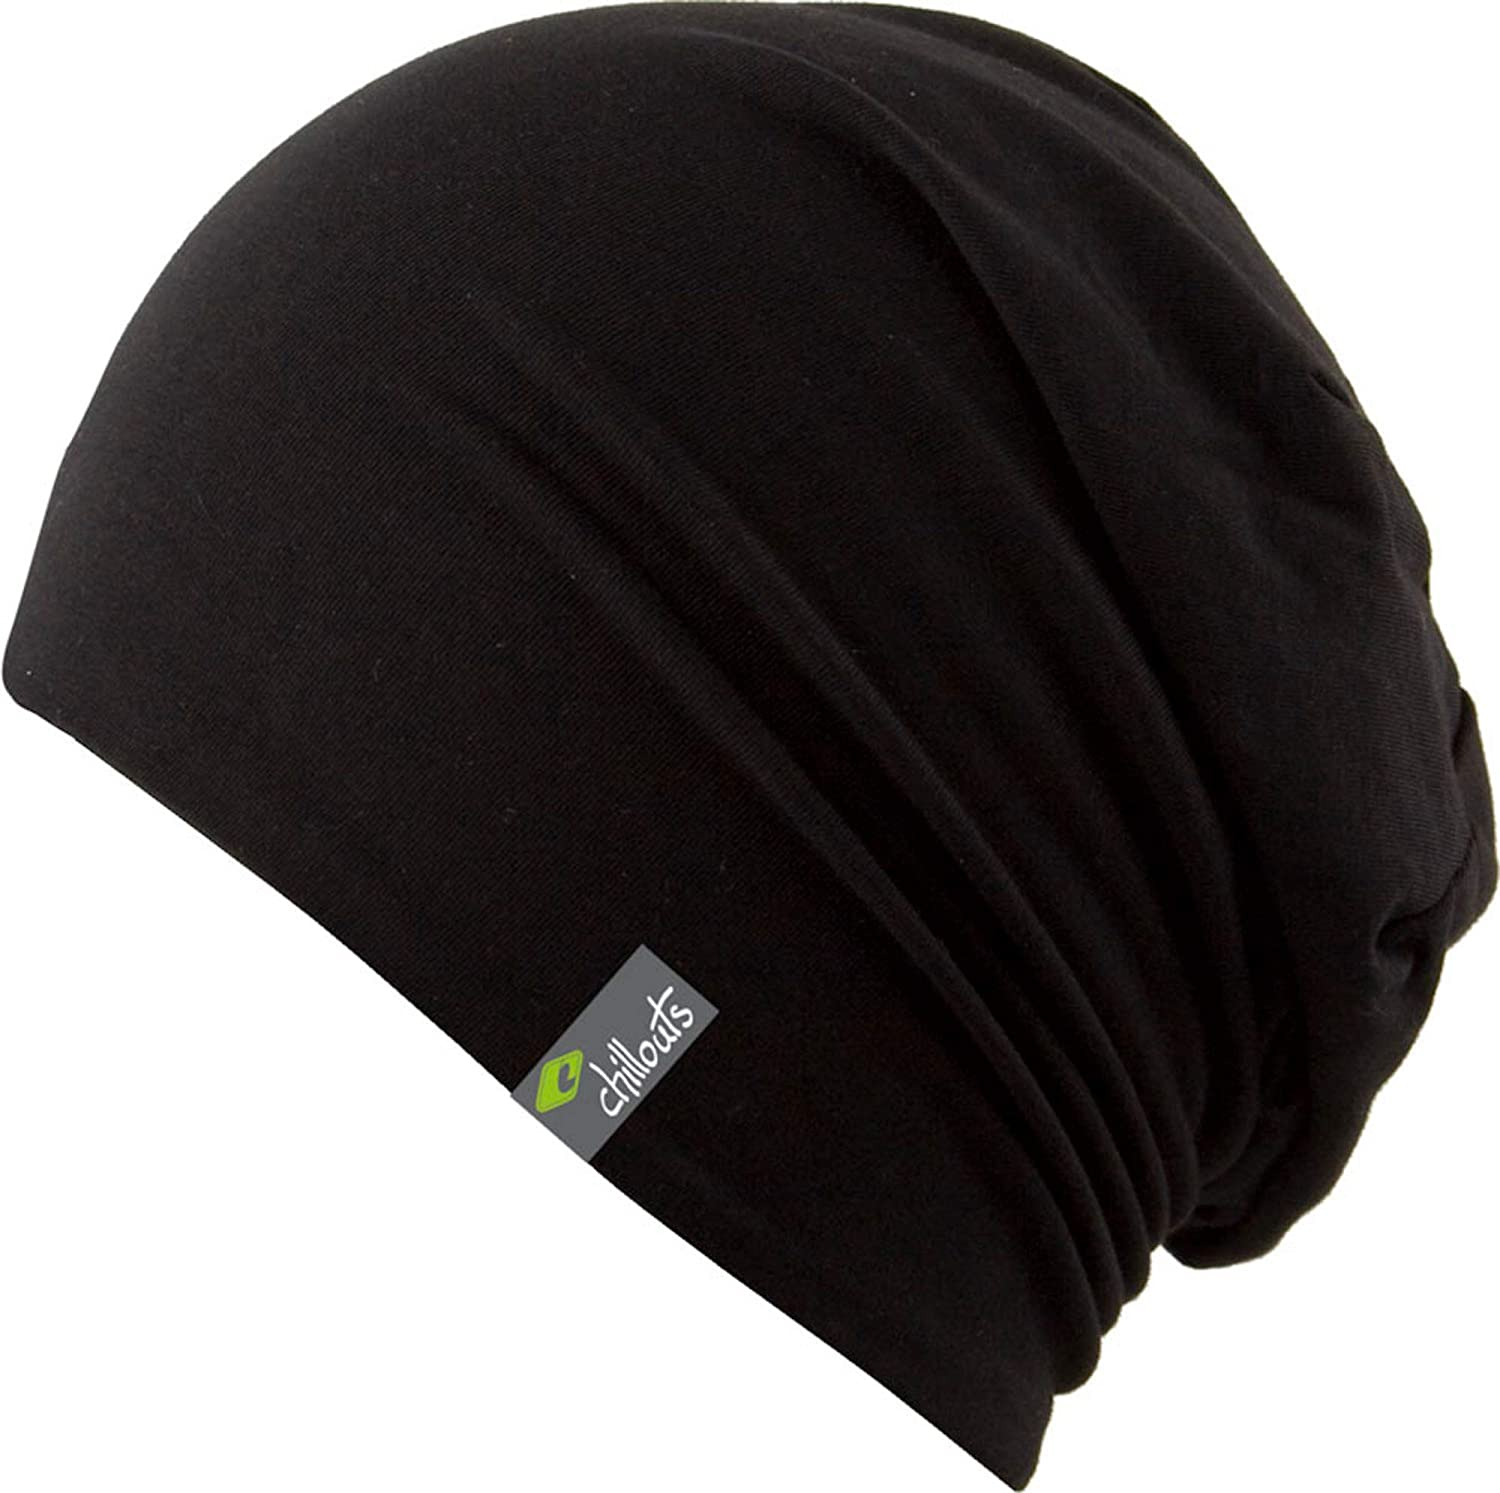 Fr/ühling Sommer Neu Chillouts Acapulco Hat Long Beanie Summer Slouch Beanie